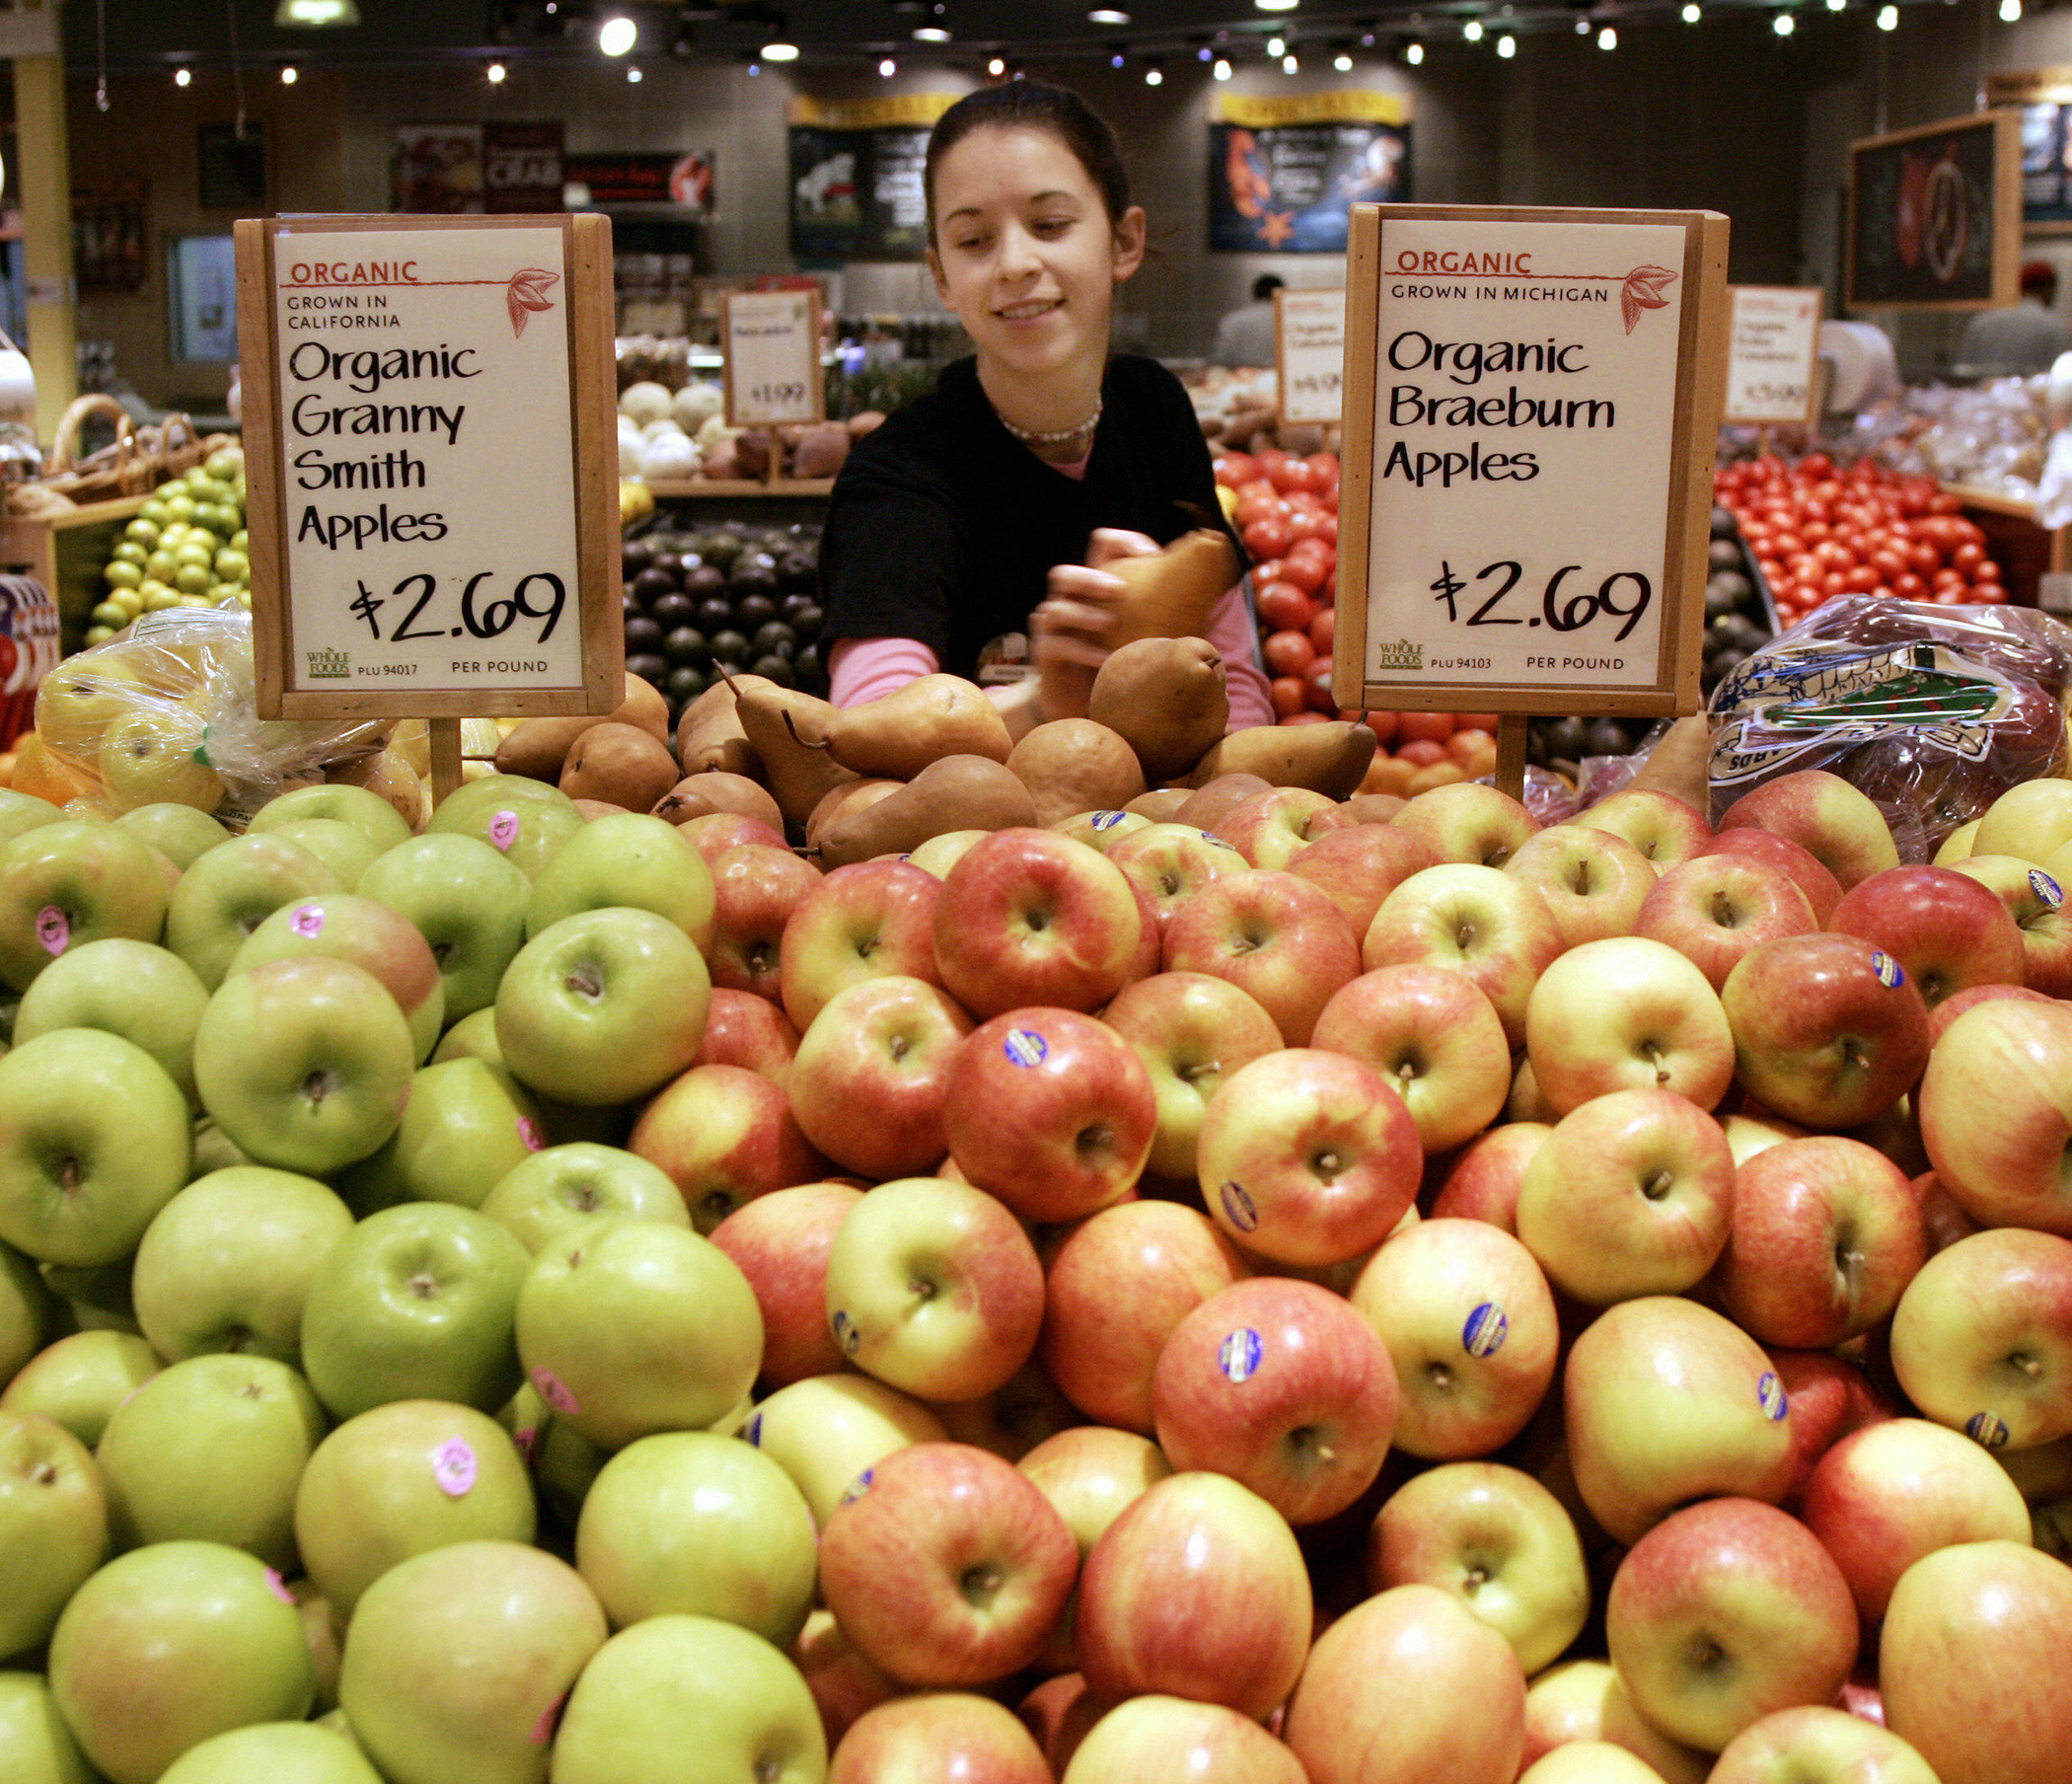 Organic produce sections in The Whole Foods Market in Willowbrook, Illinois